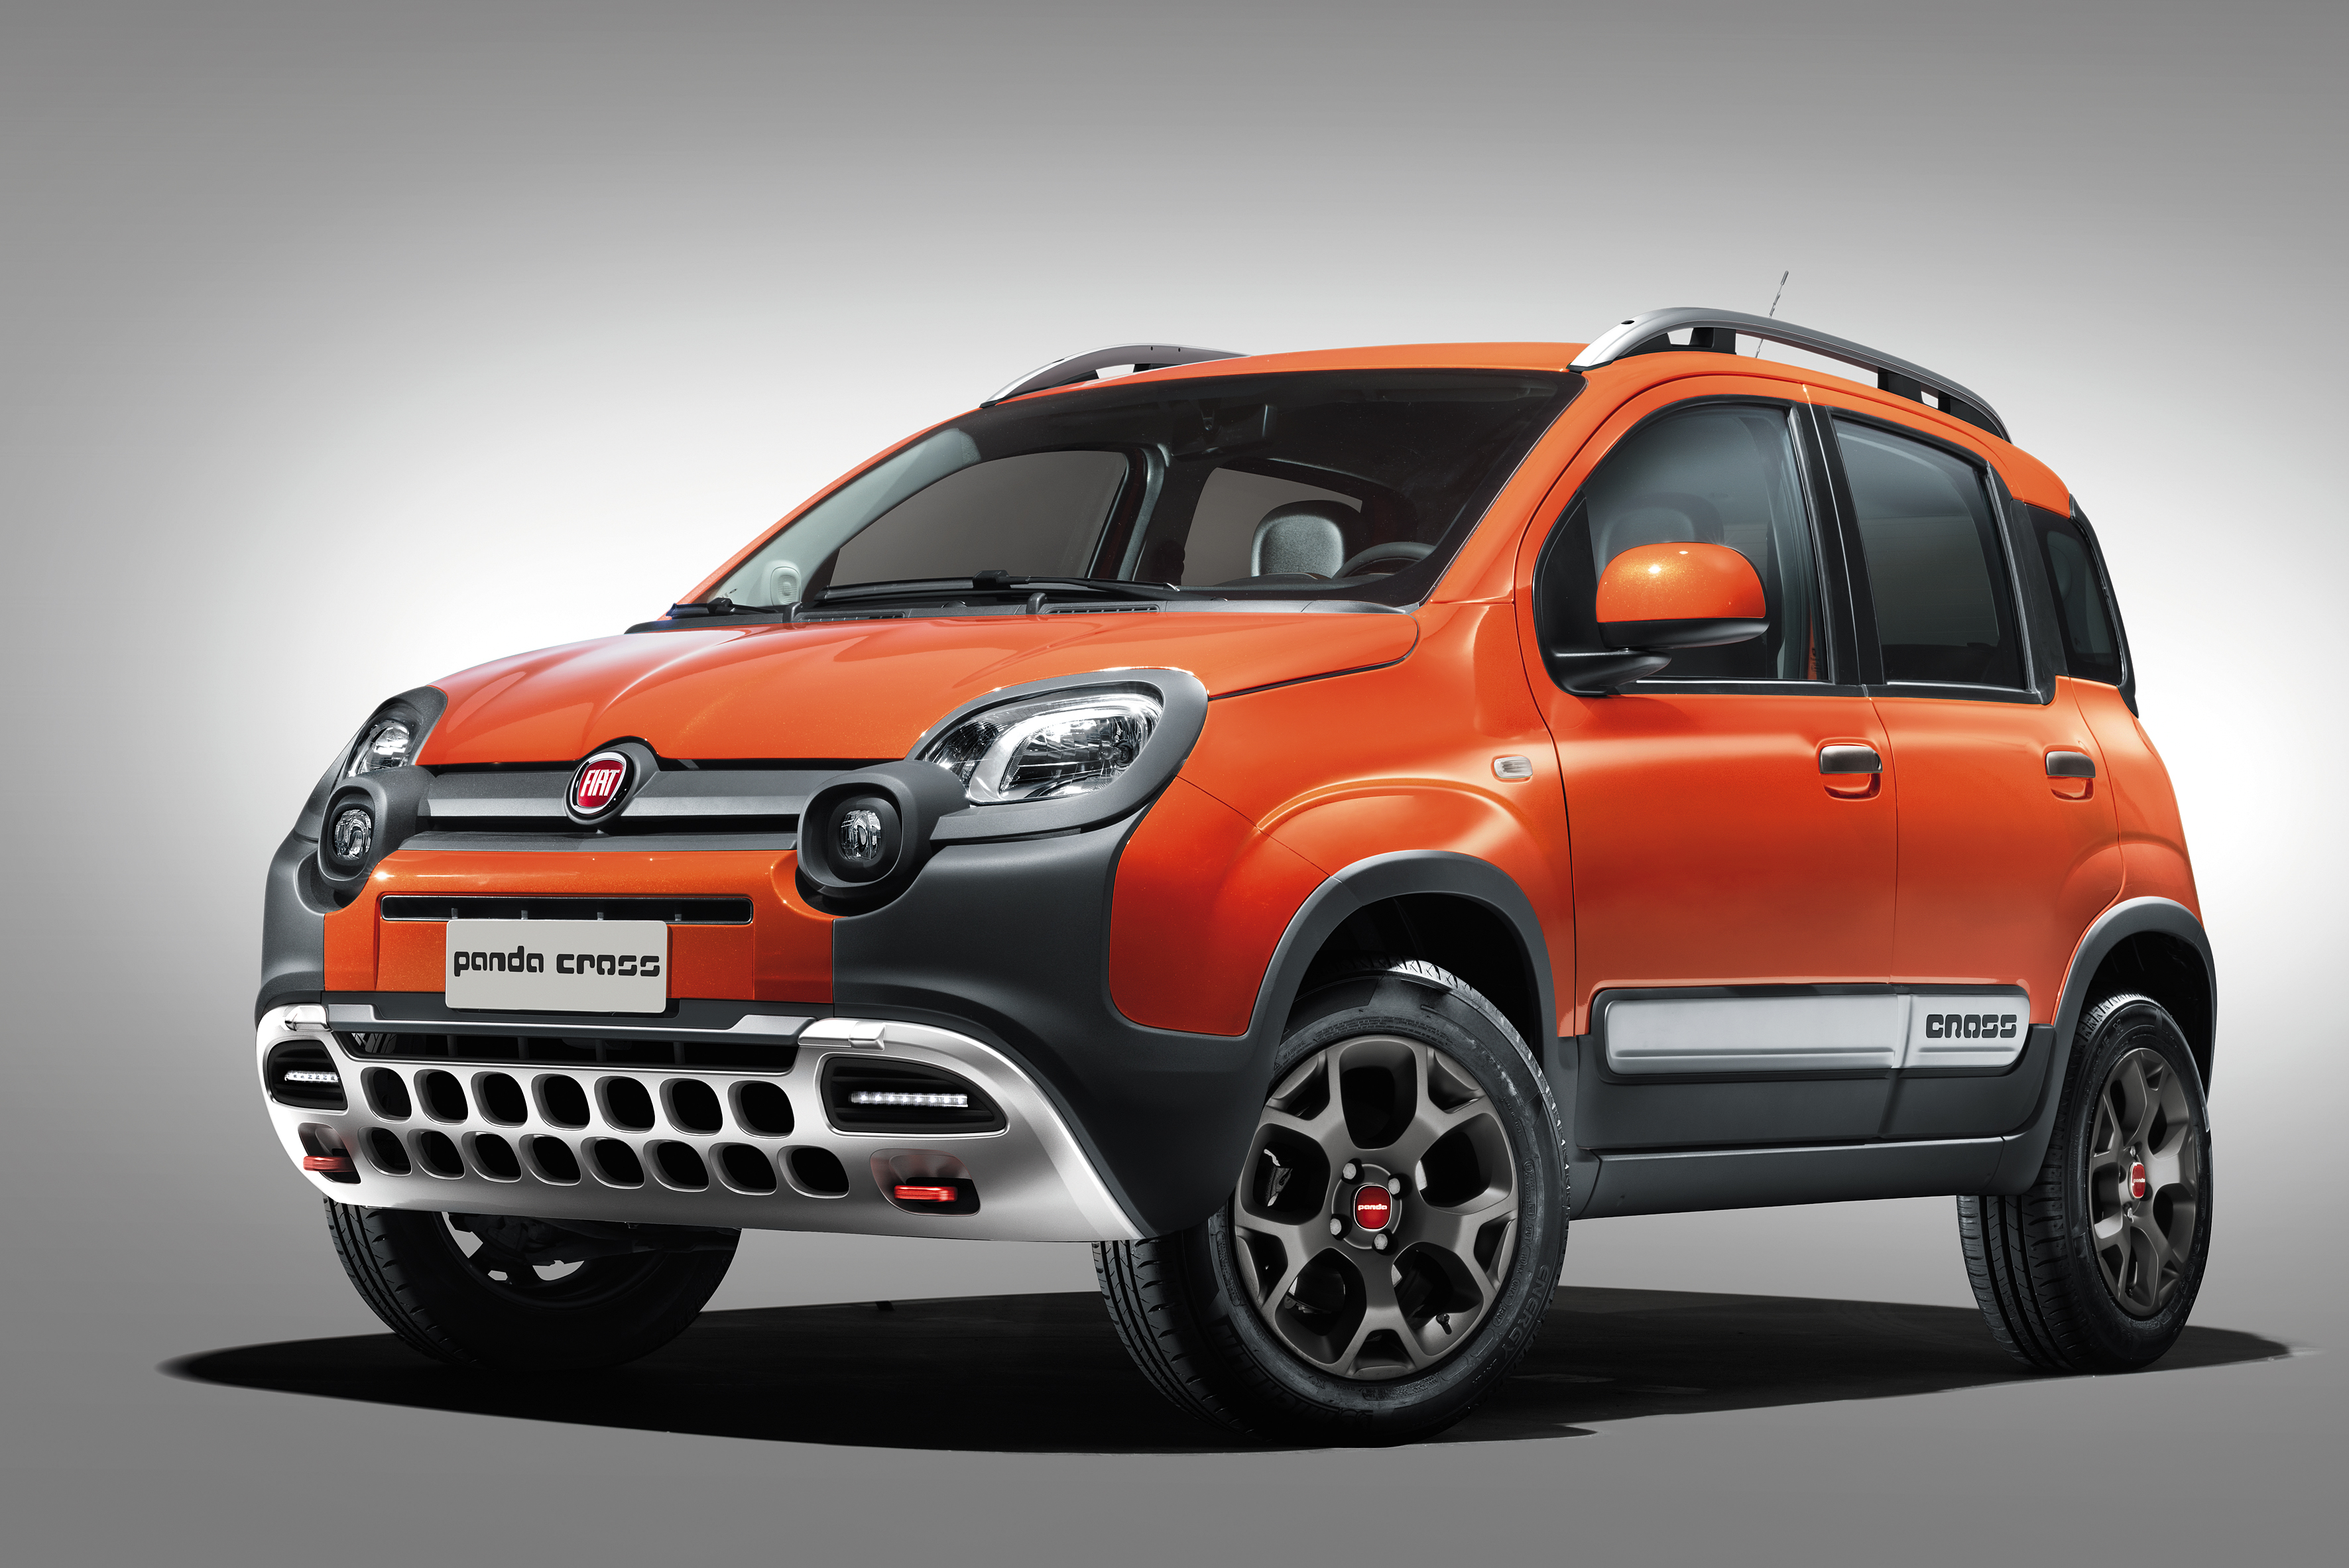 all new fiat panda cross to debut at 2014 geneva motor show press fiat group automobiles press. Black Bedroom Furniture Sets. Home Design Ideas